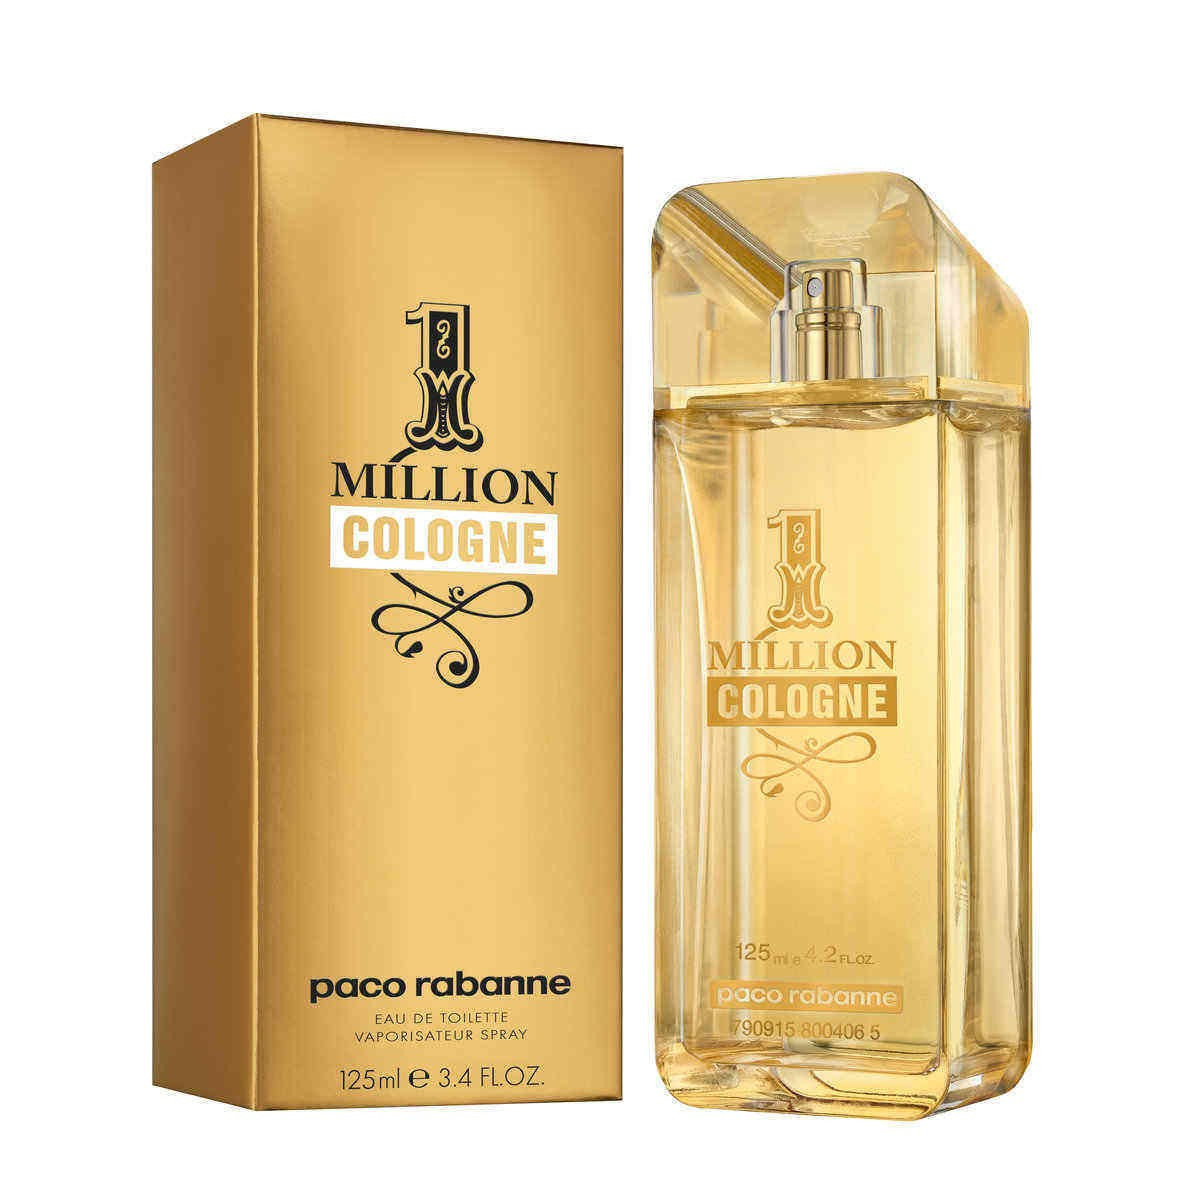 Paco Rabanne 1 Million Cologne туалетная вода 125 ml. (Пако Рабанн 1 Миллион Коллаген)